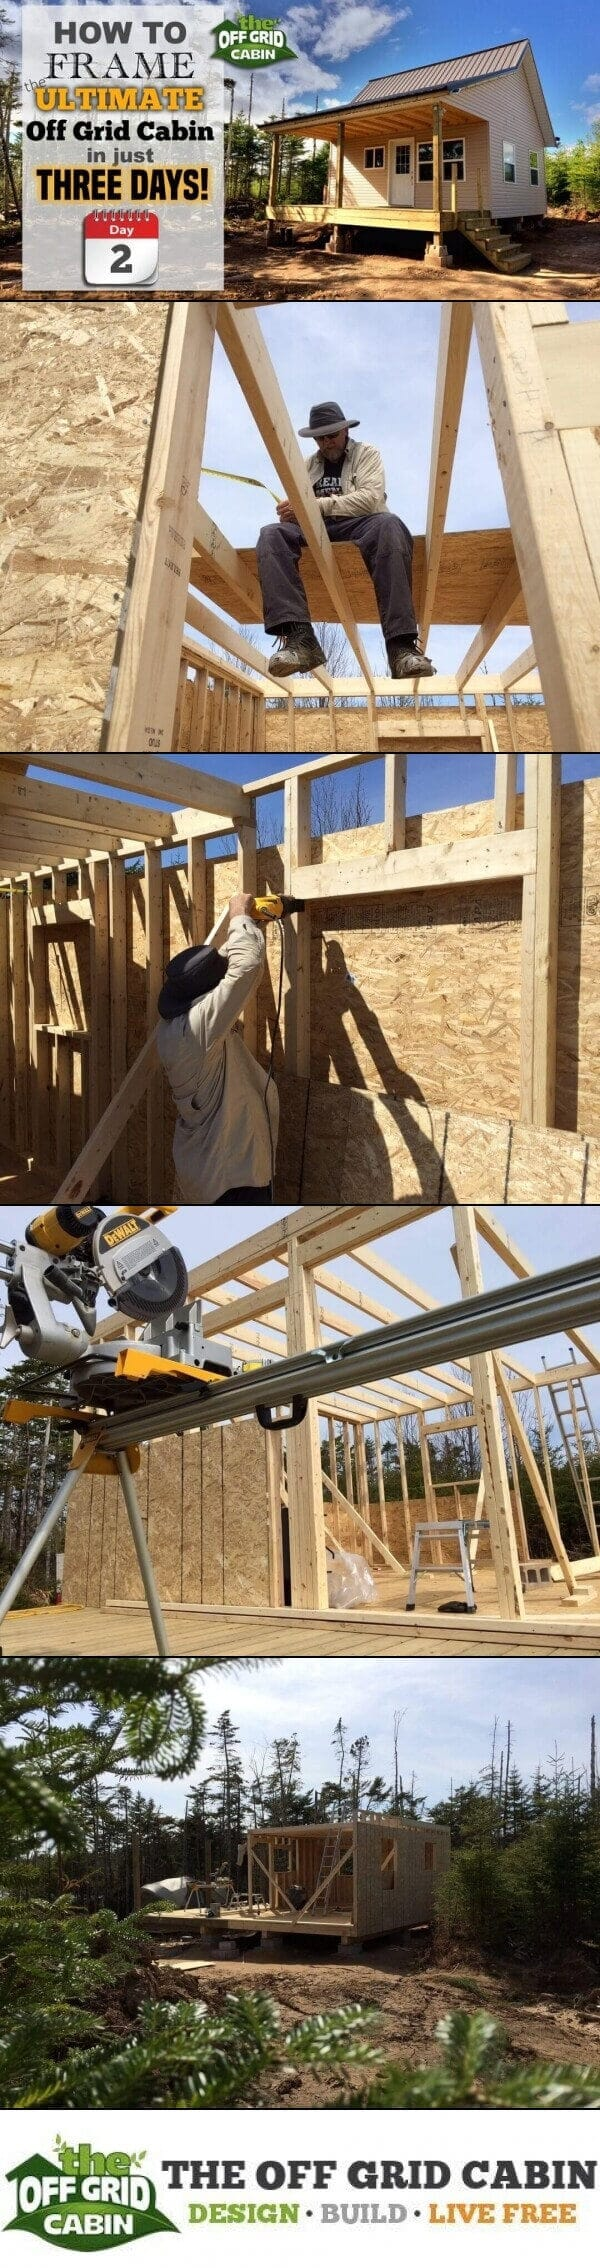 Framing The Cabin Walls In 3 Days Off Grid Cabin Pinterest Image